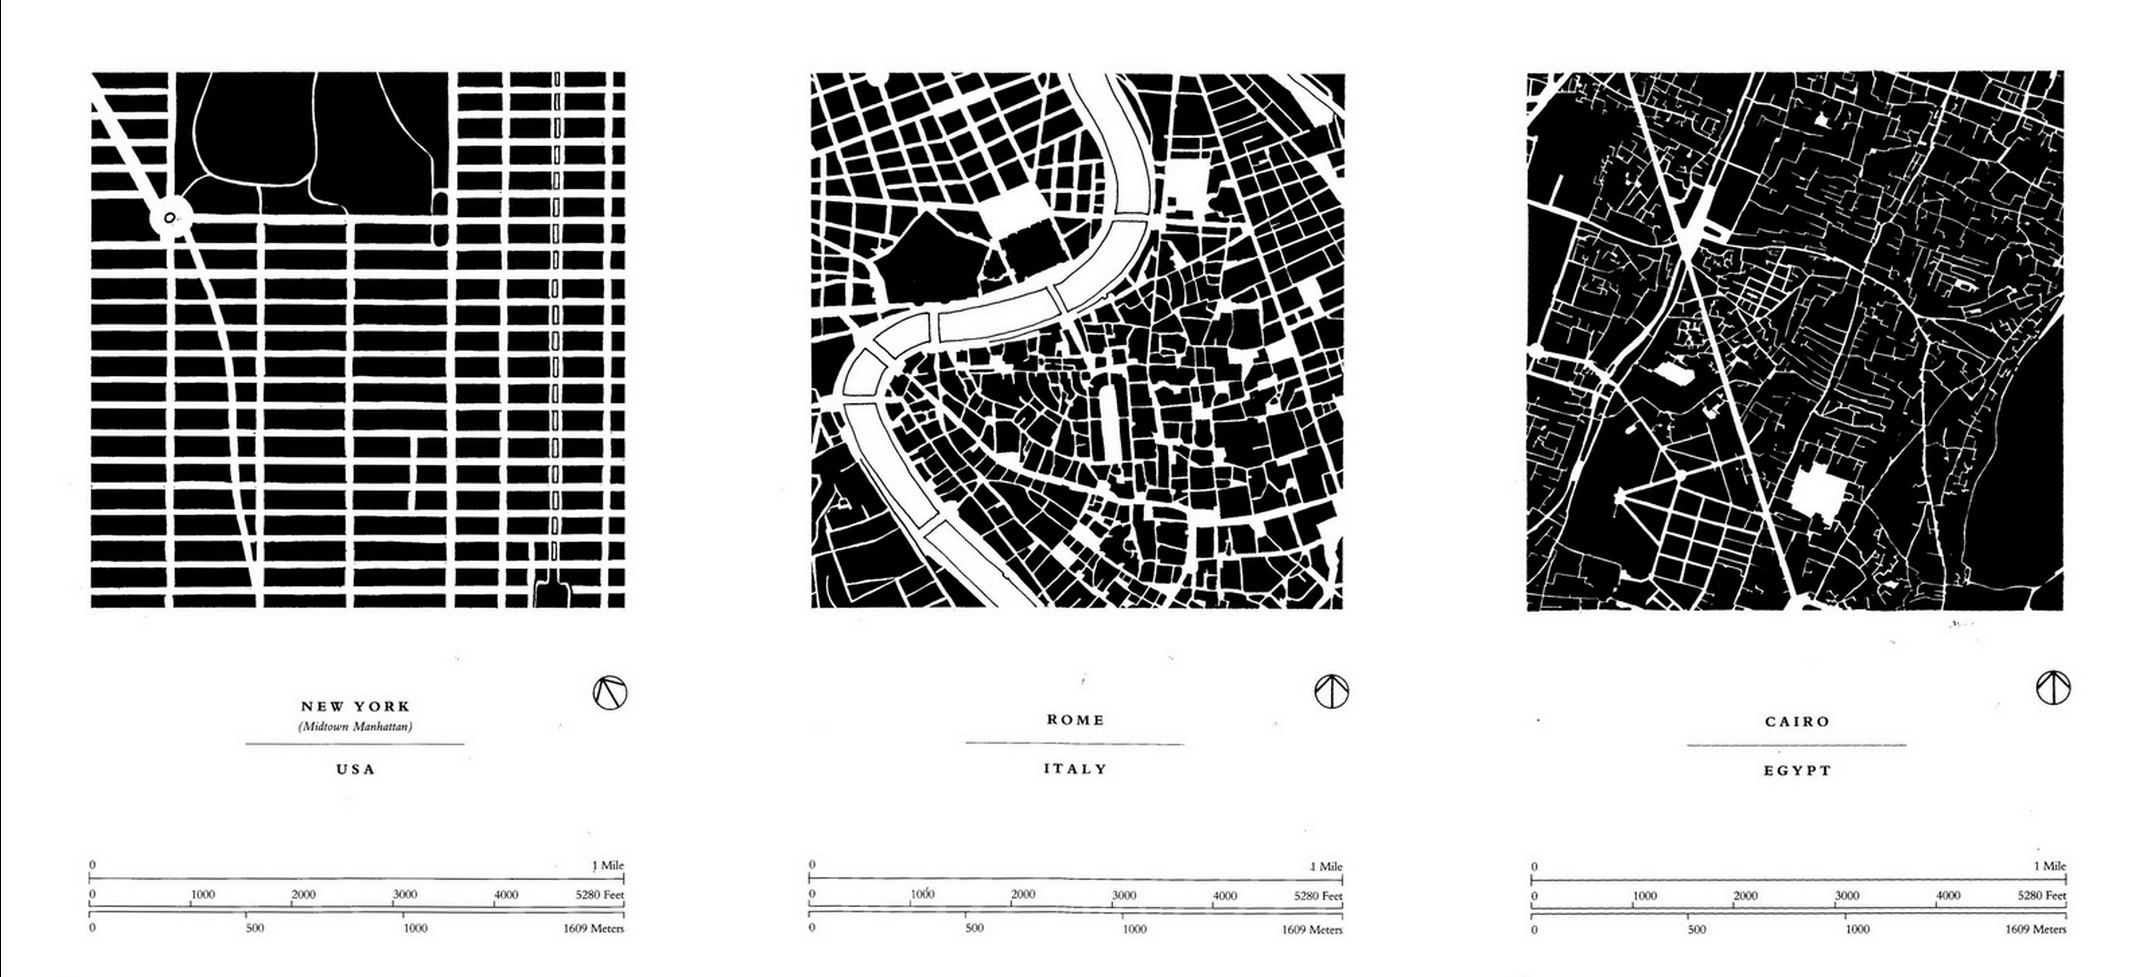 Allan Jacob's diagrams of city for